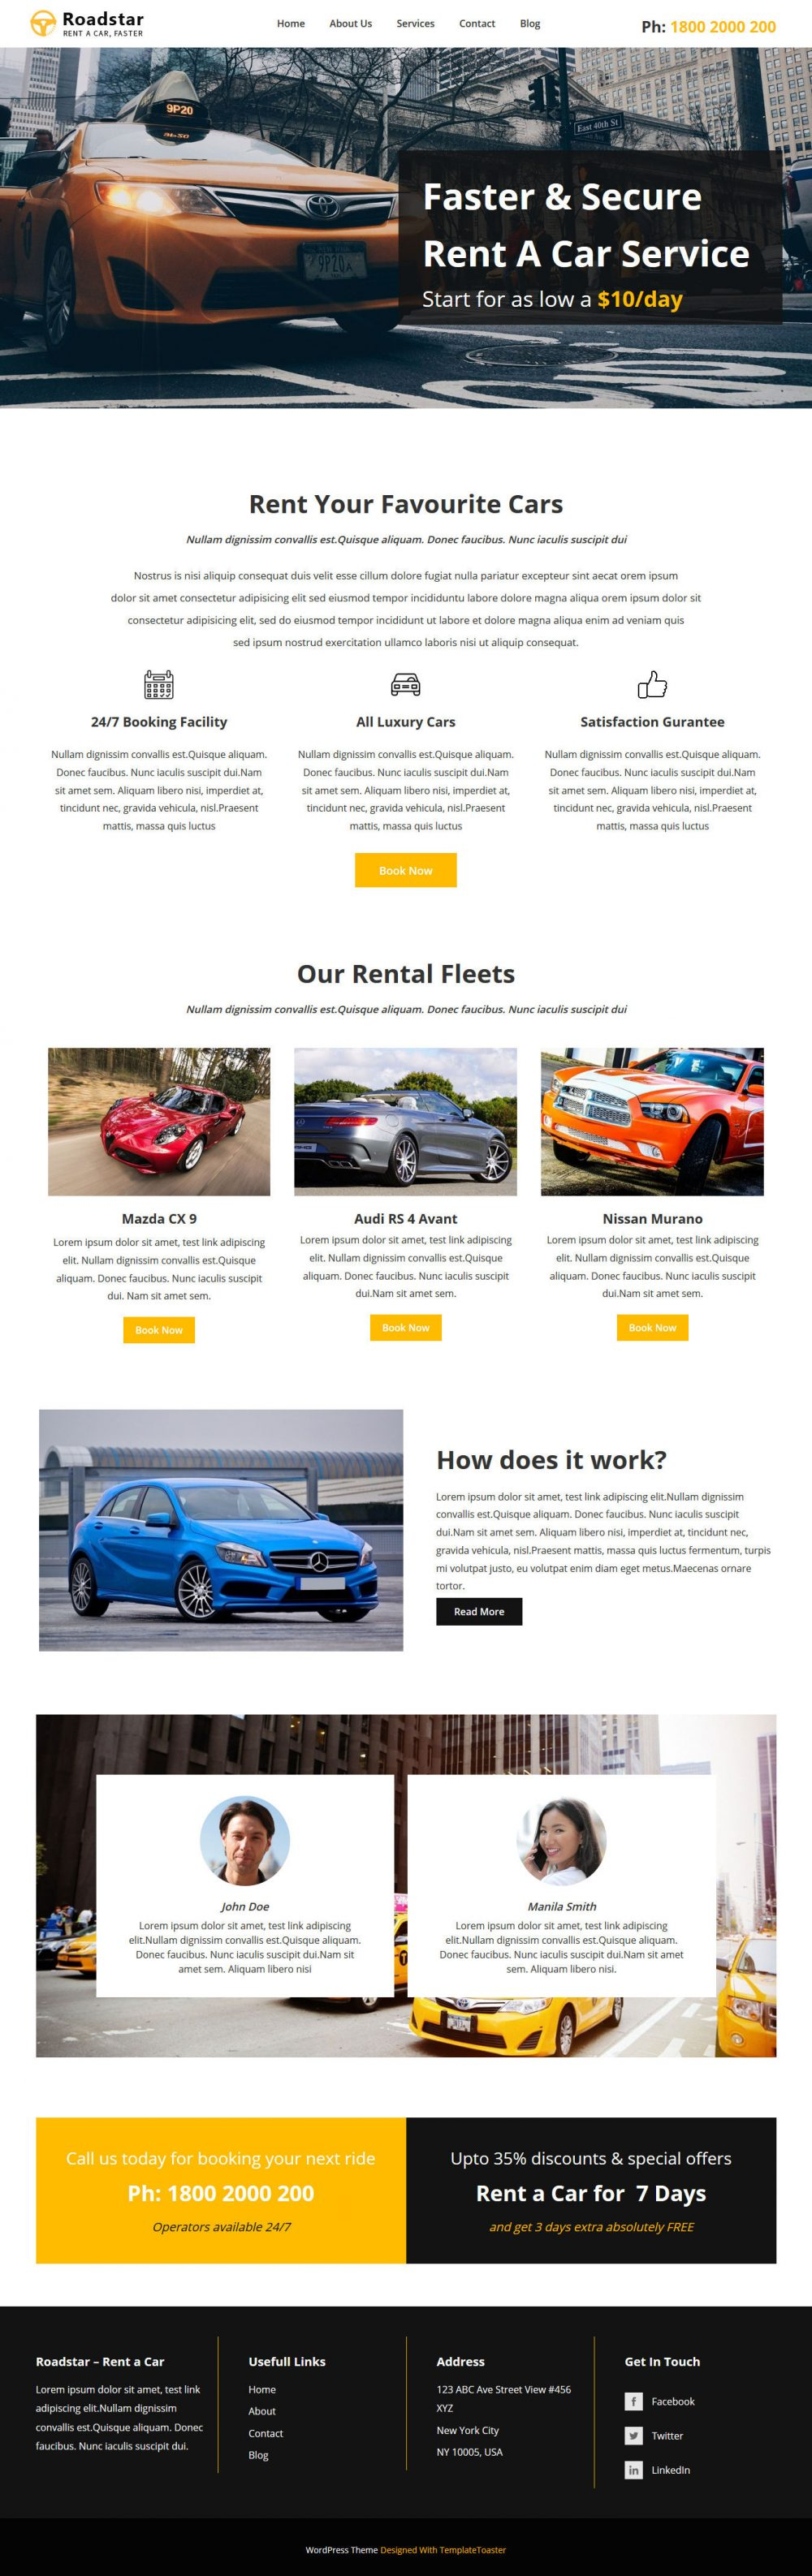 roadstar car rental services blogger template